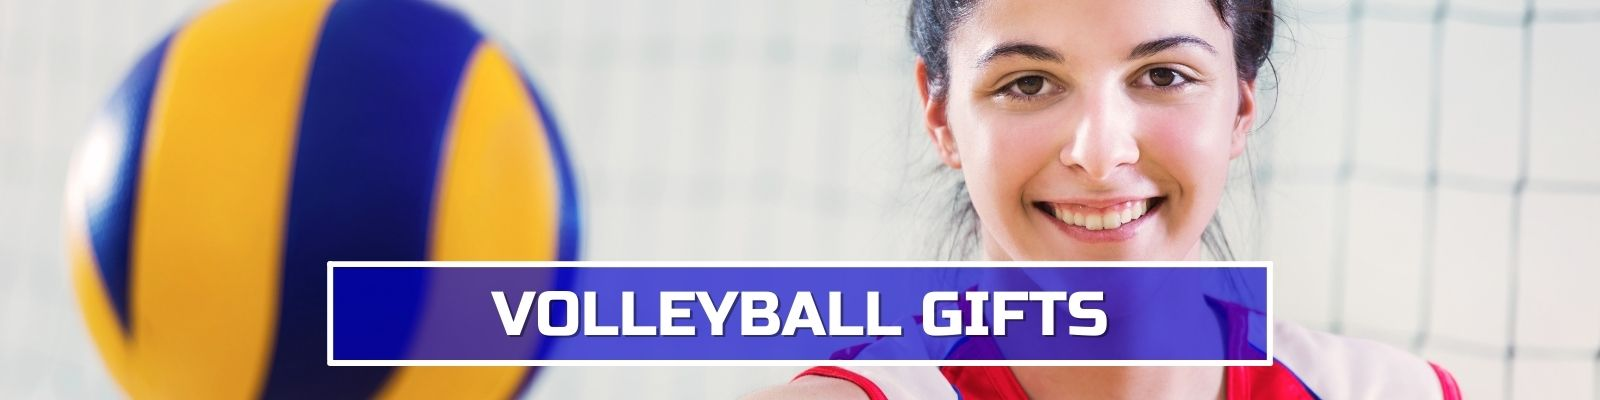 volleyball-gifts